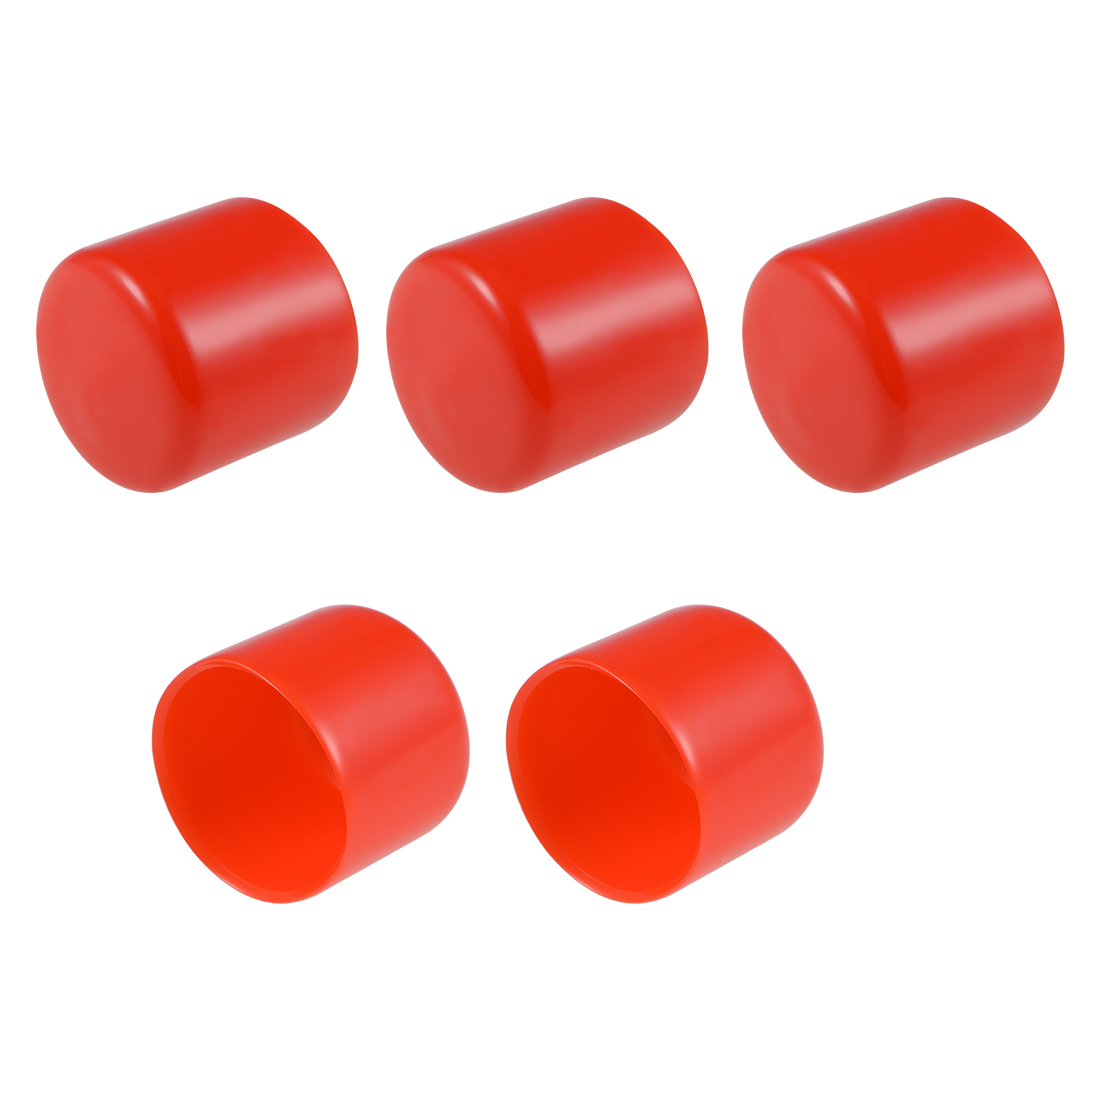 Screw Thread Protectors, 34mm ID 36mm Length Round End Cap Cover Red 5pcs